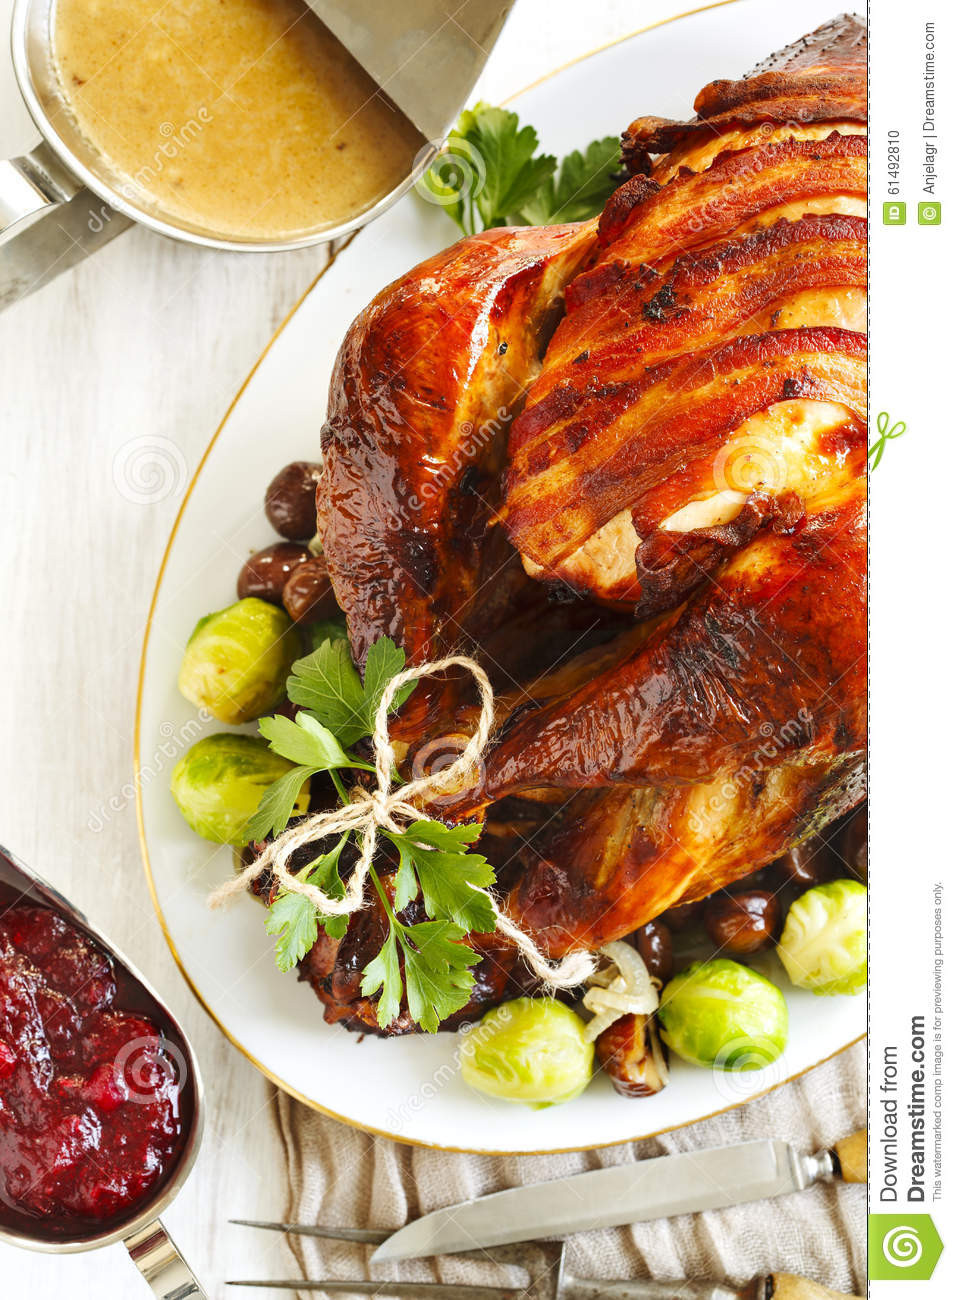 Prepared Turkey For Thanksgiving  Roasted Turkey With Bacon And Garnished With Chestnuts And